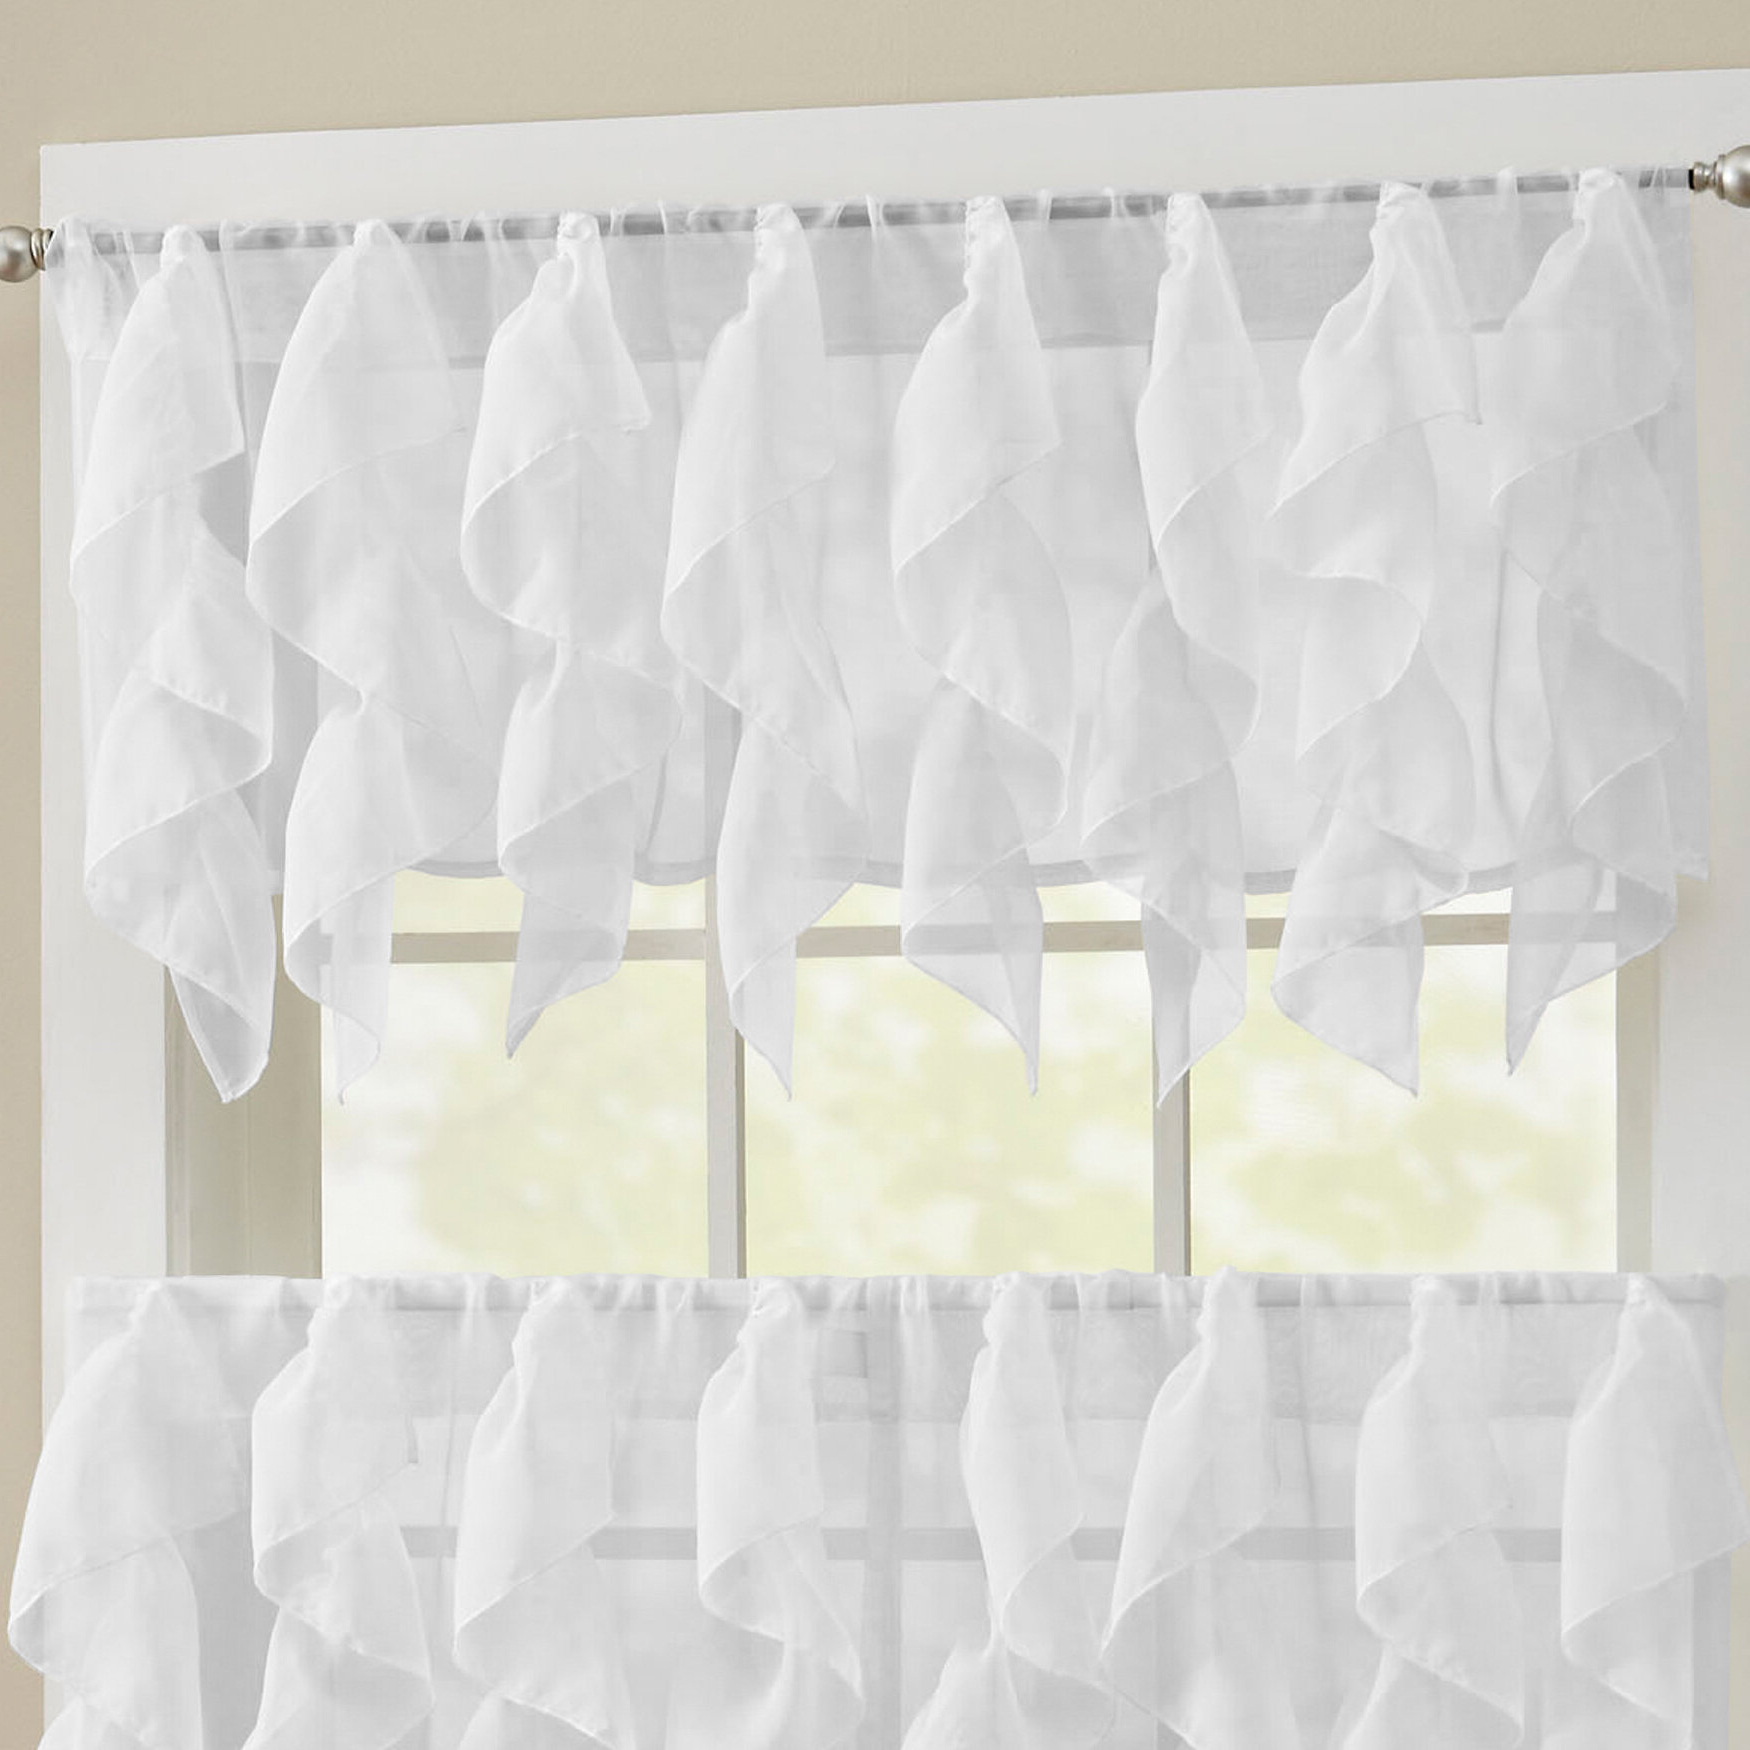 Alonza Window Valance Throughout Fashionable Silver Vertical Ruffled Waterfall Valance And Curtain Tiers (View 10 of 20)